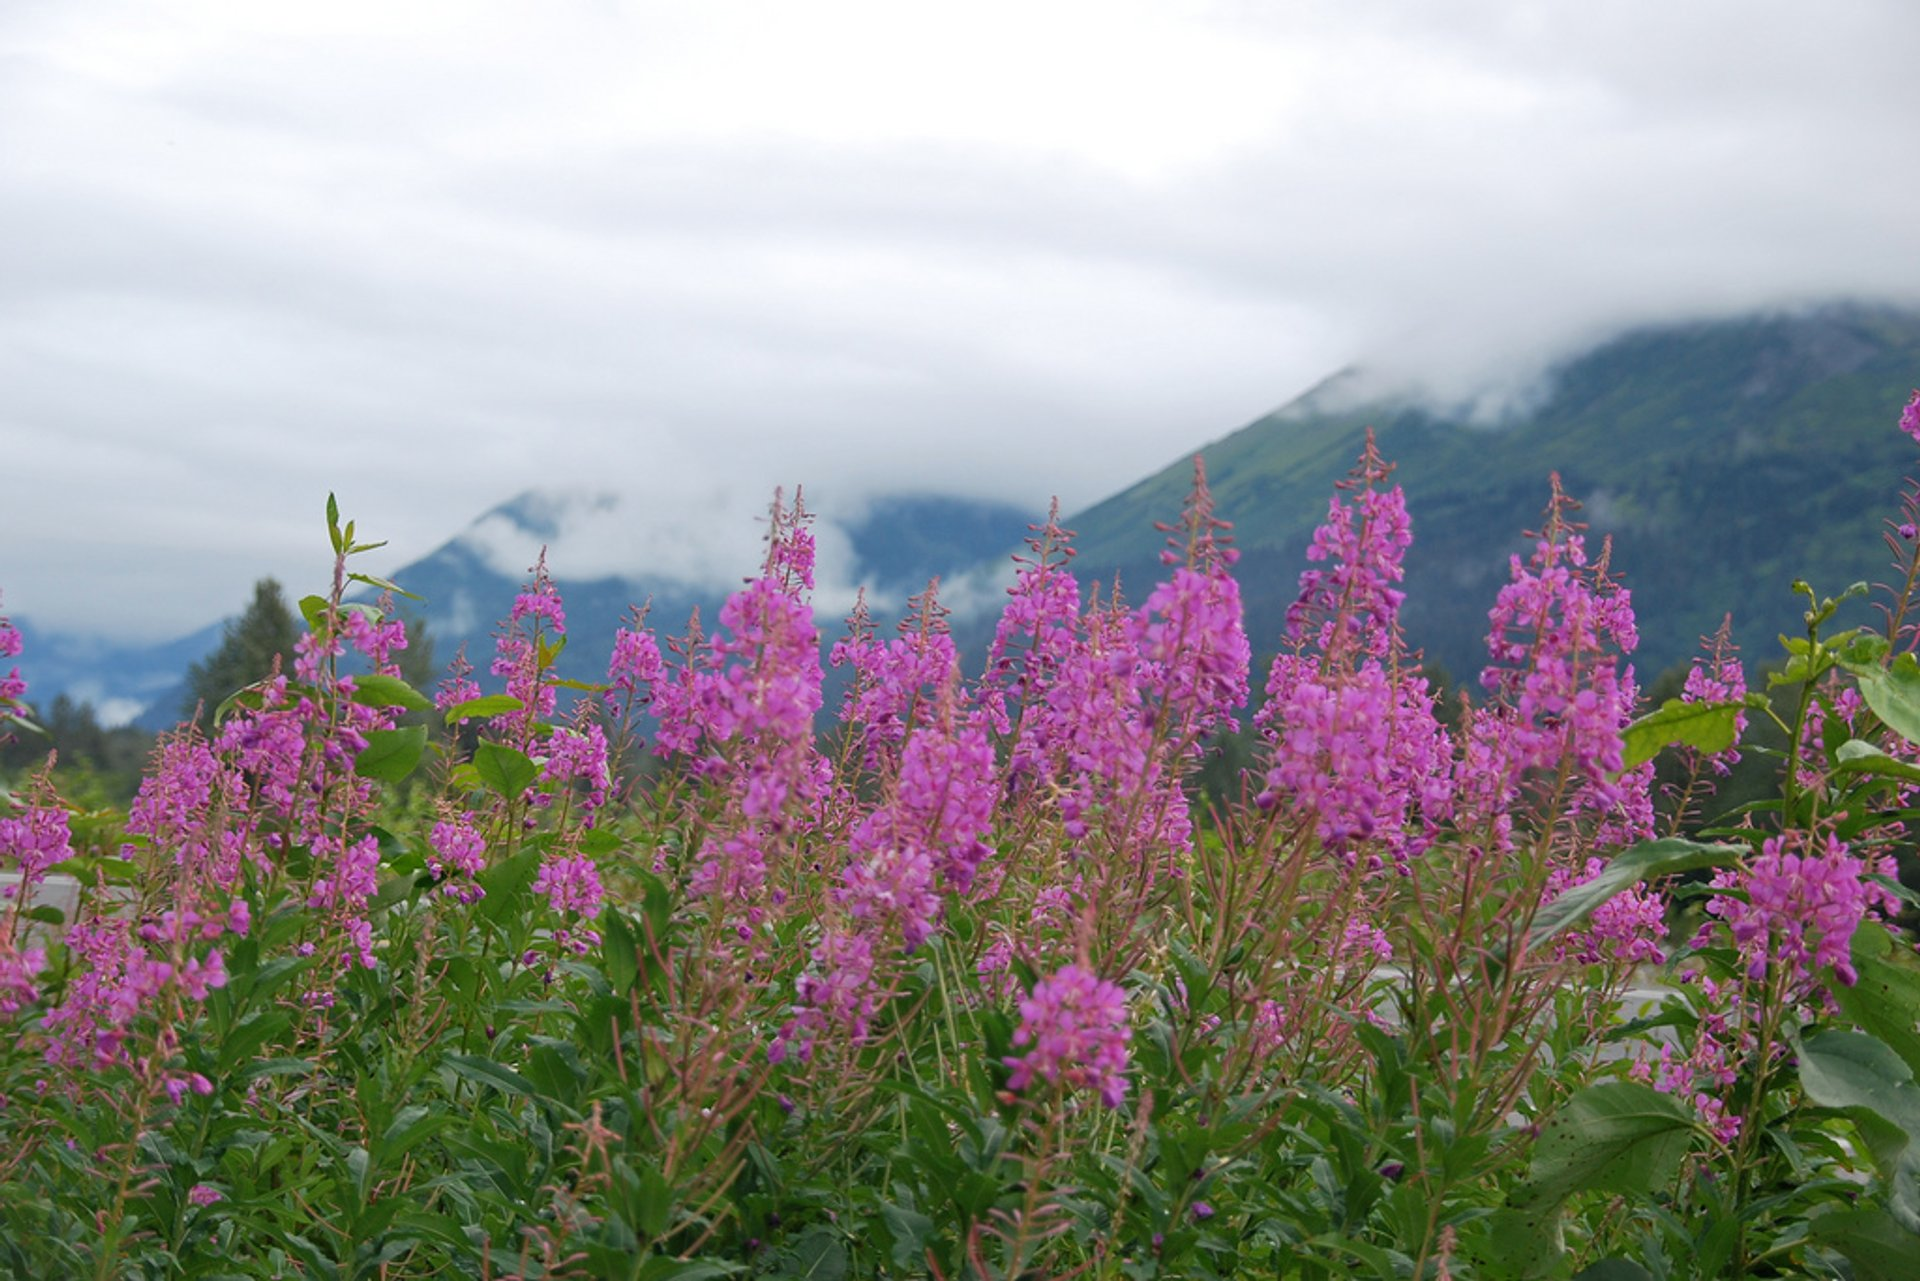 Fireweed and Shooting Stars Bloom in Alaska 2020 - Best Time